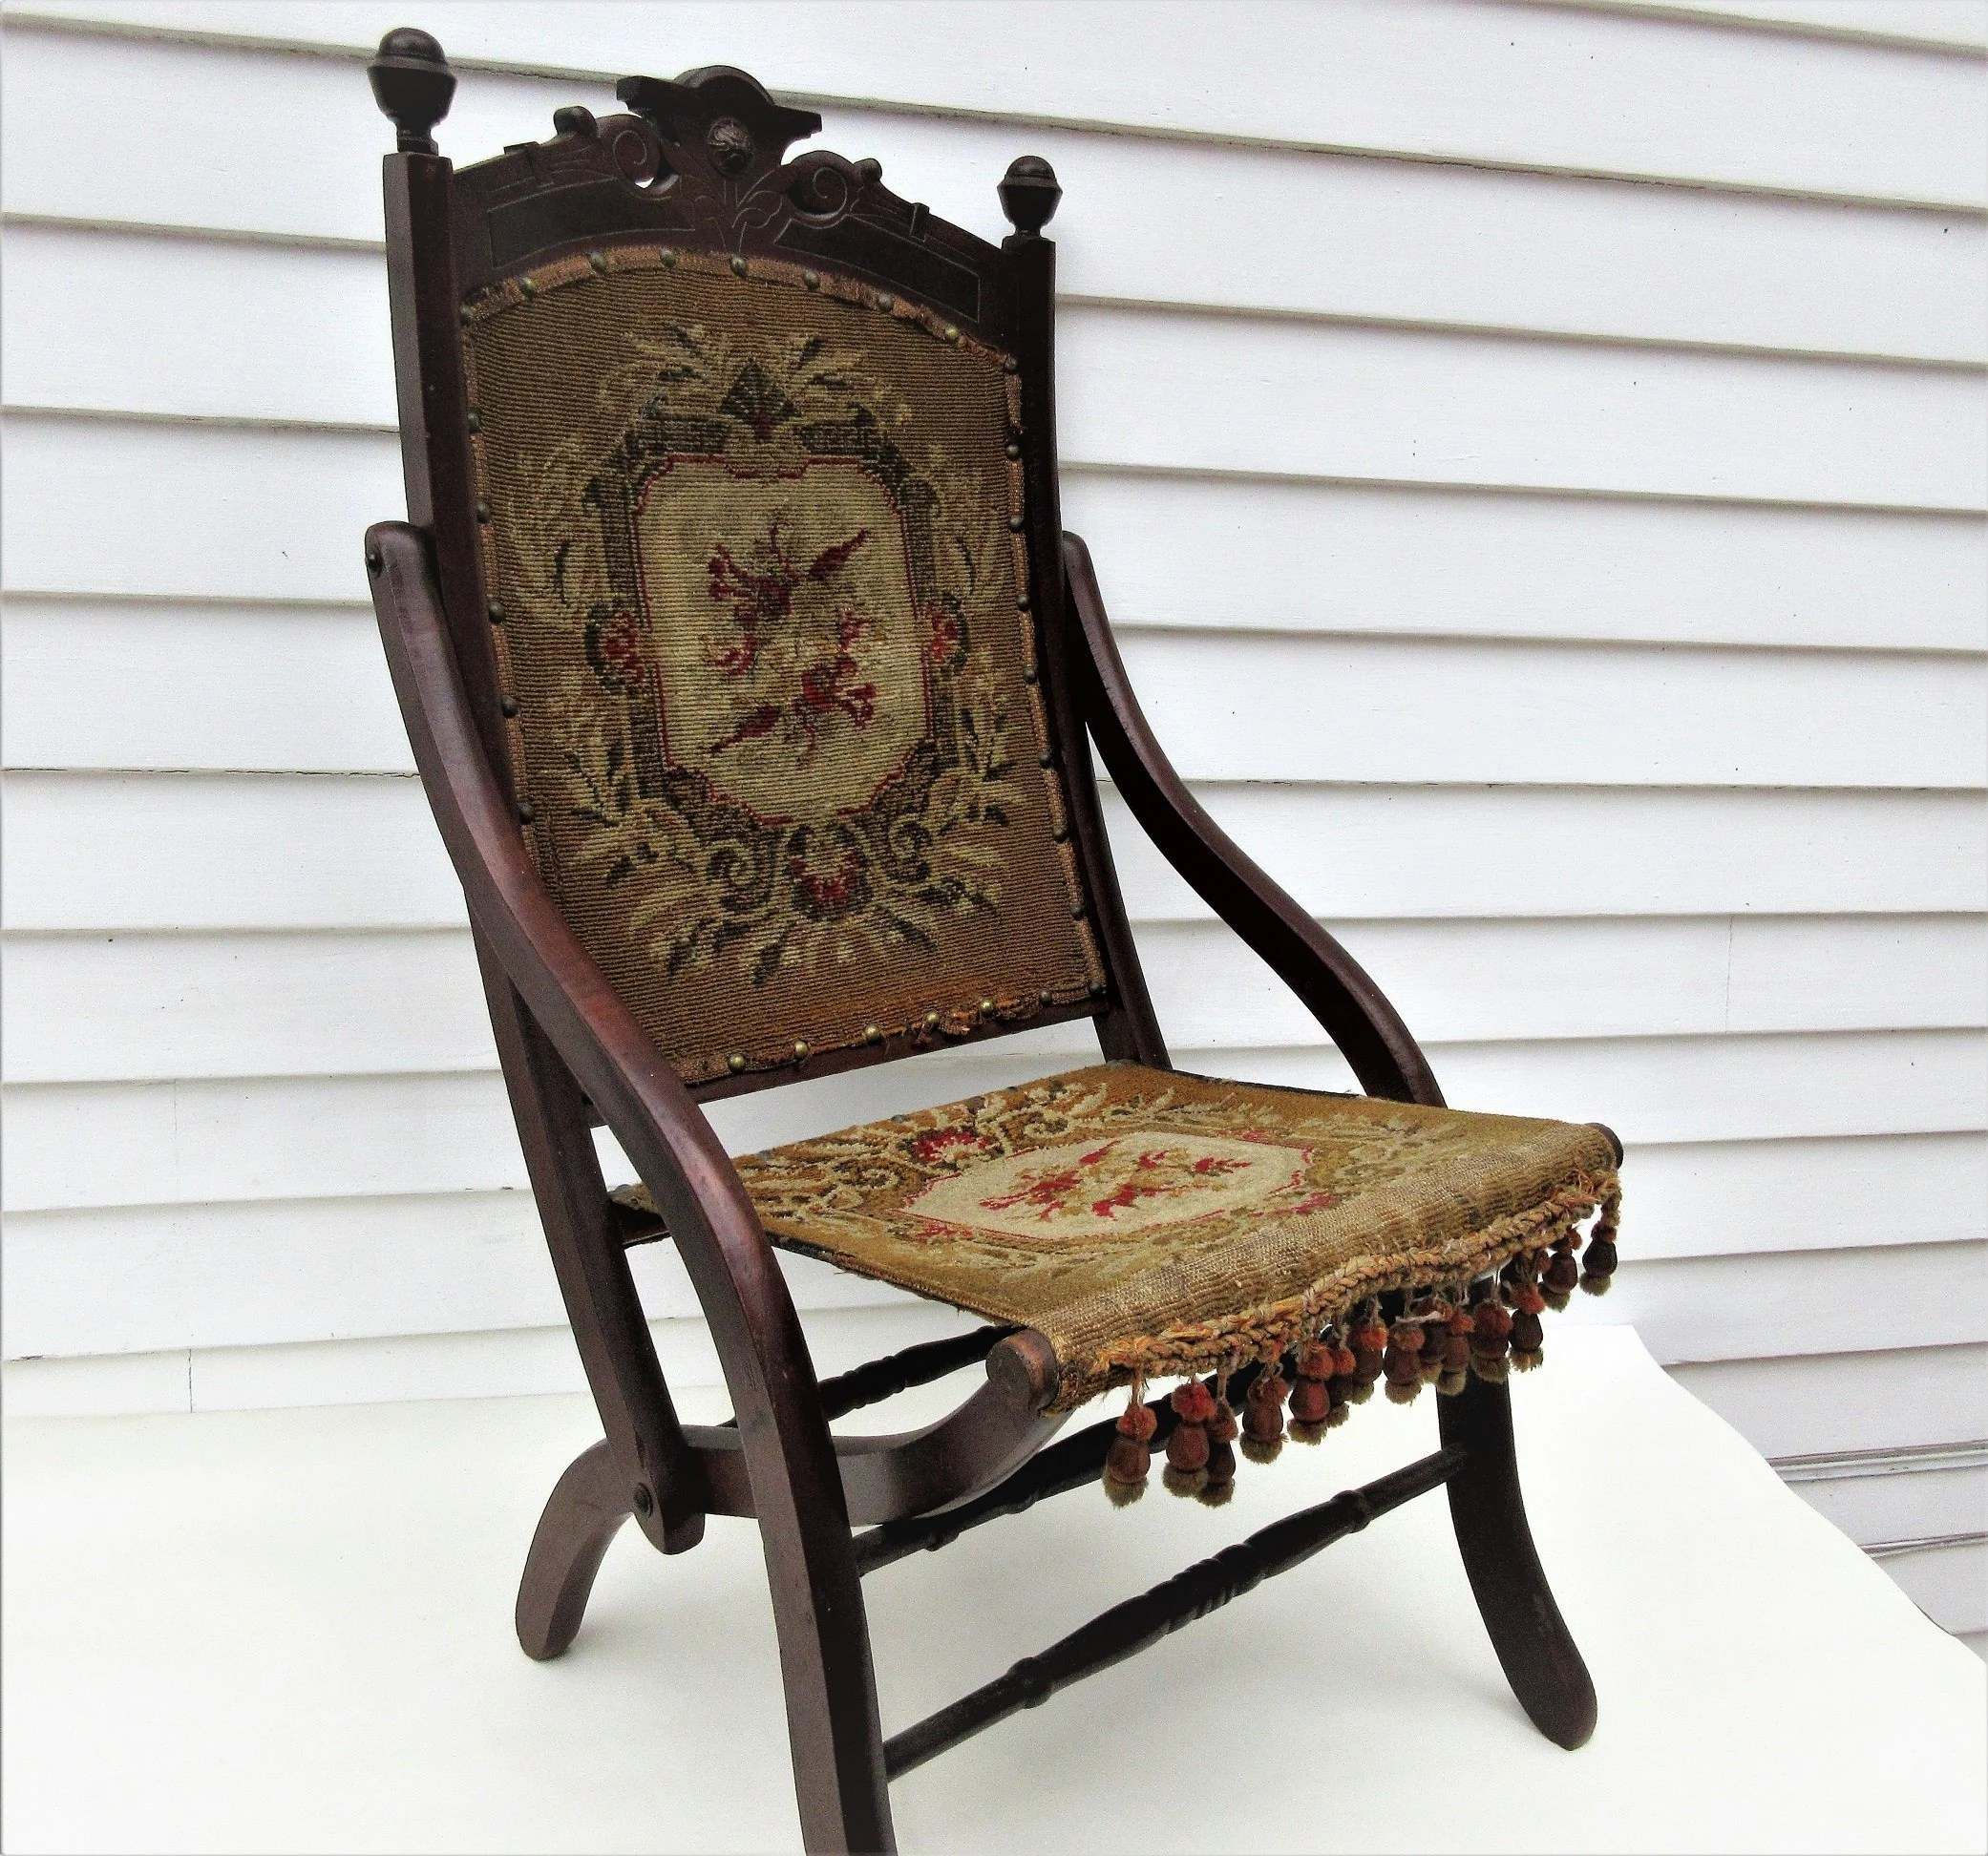 Collapsible Chair Antique Folding Chair Campaign Chair Tapestry Chair Victorian Folding Chair Collapsible Chair Travel Chair